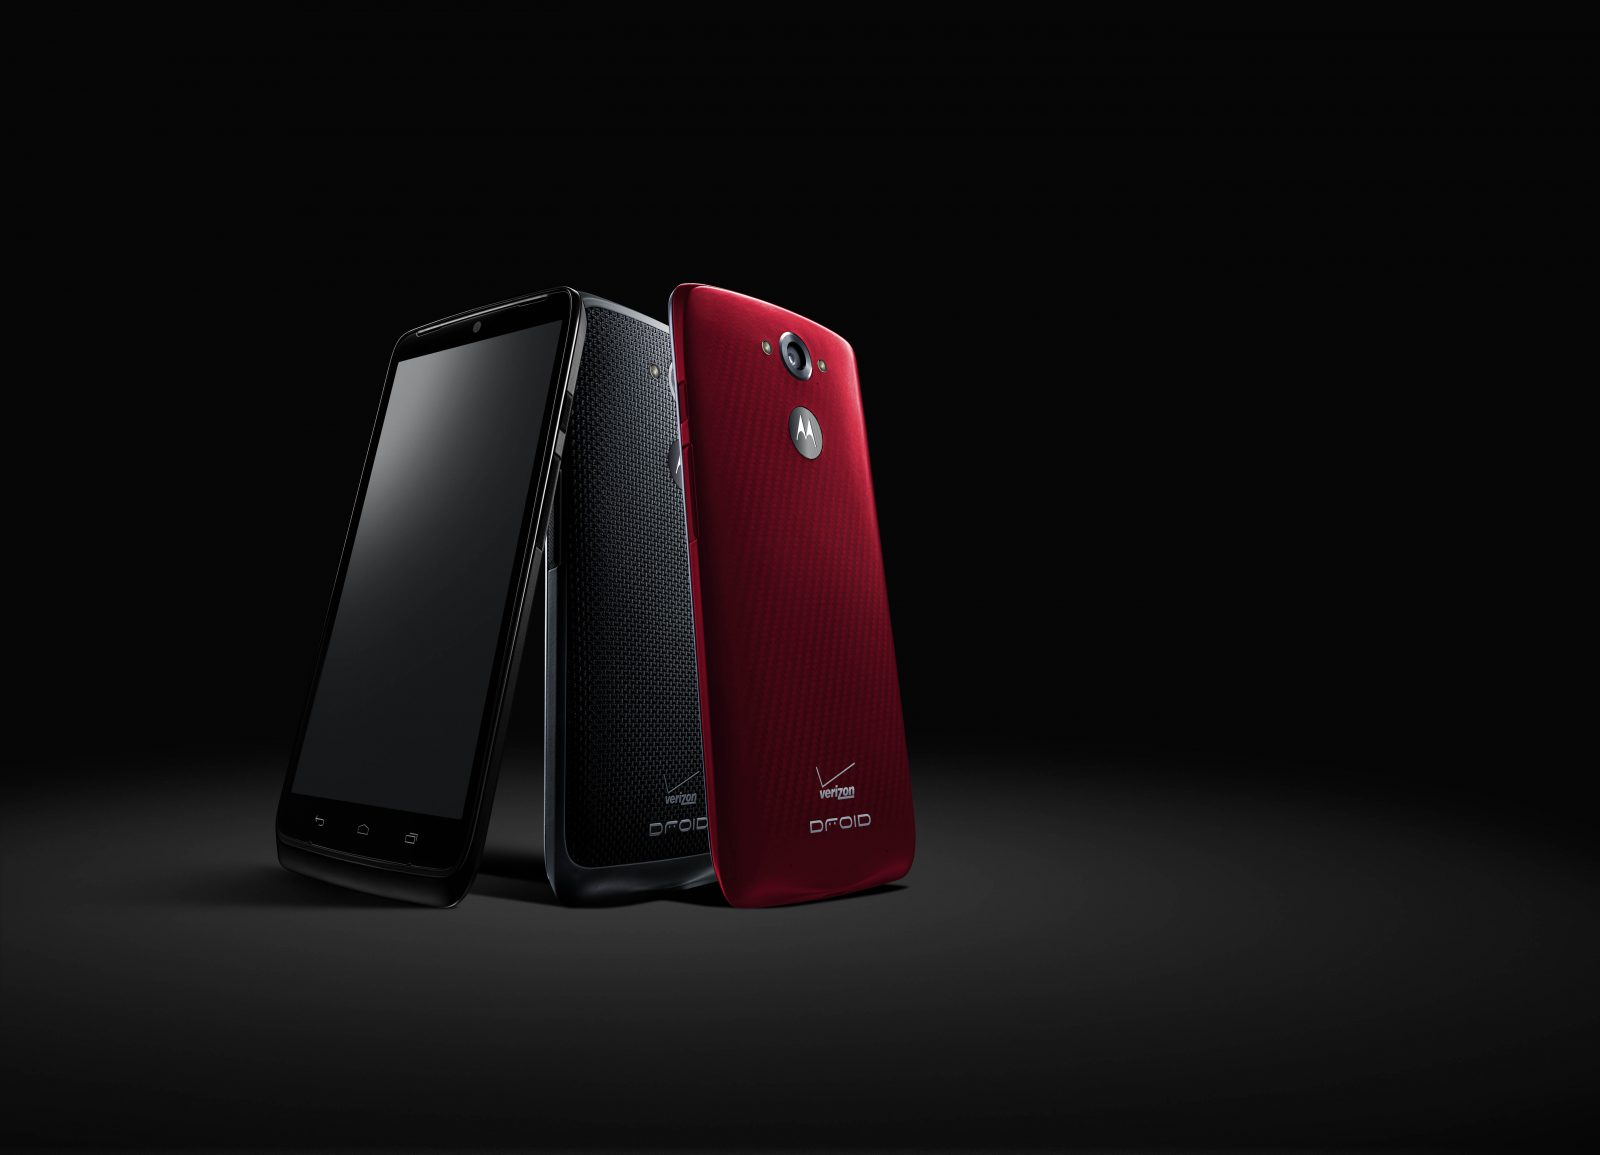 Motorola DROID Turbo - Verizon Wireless - 3 colors